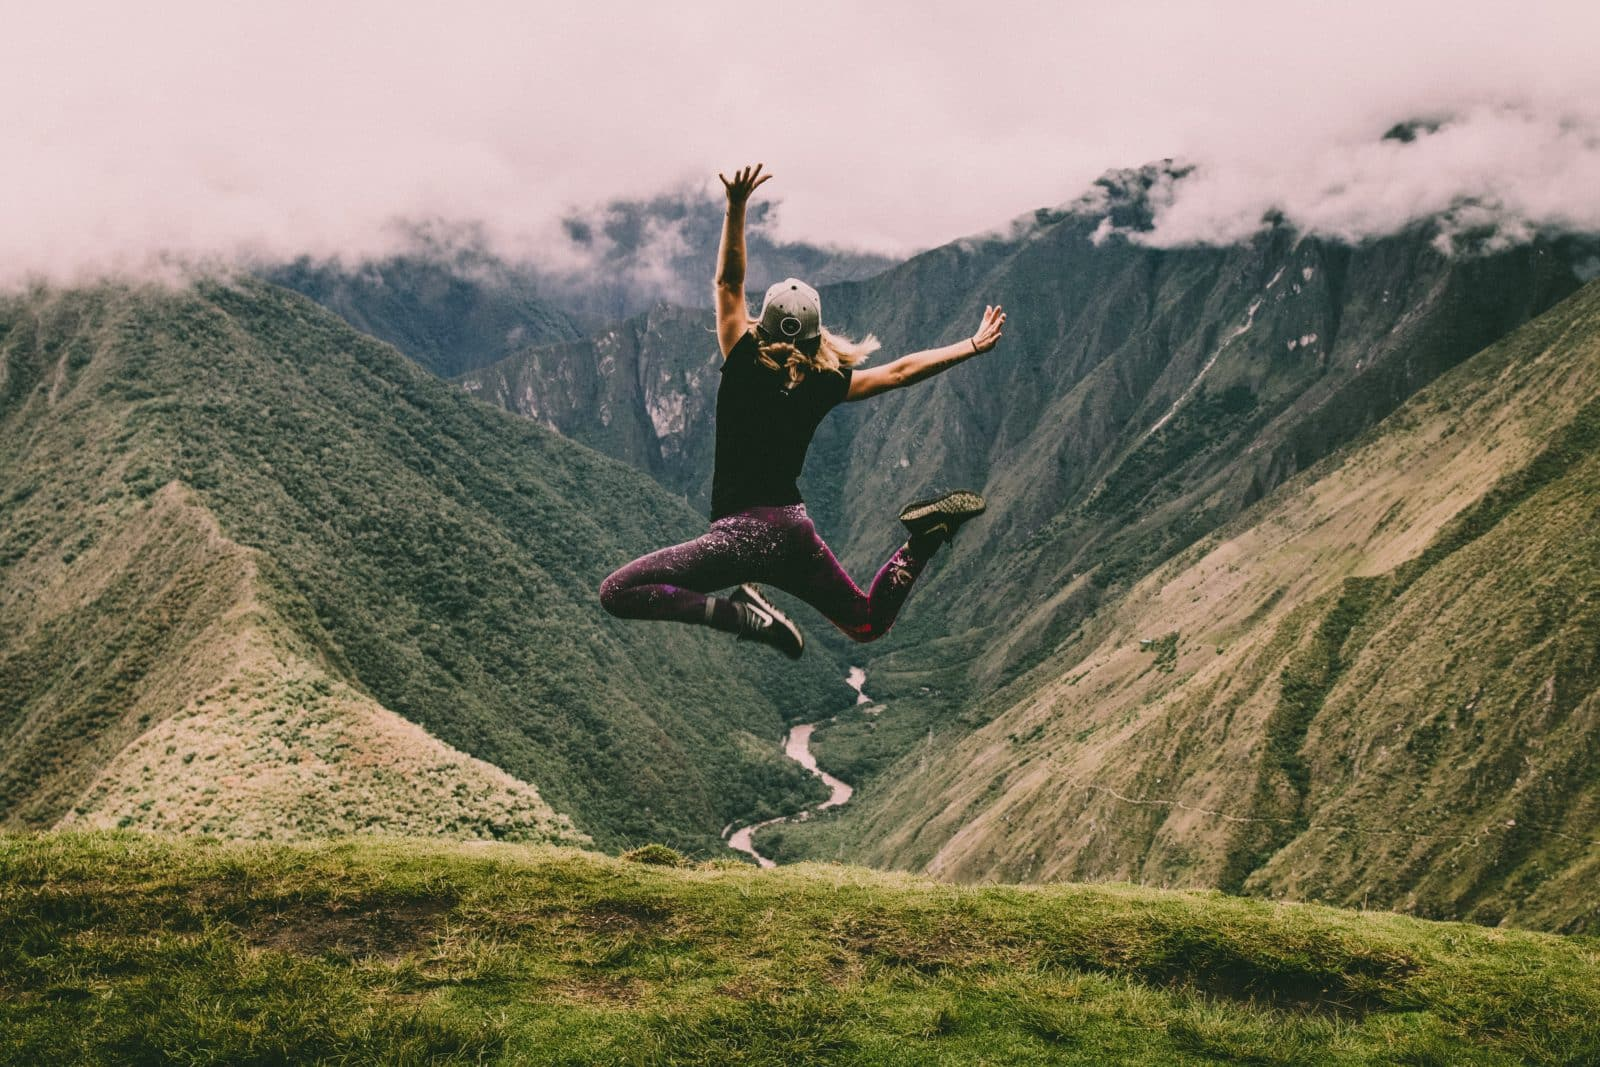 A traveller jumps in the air overlooking a scenic landscape